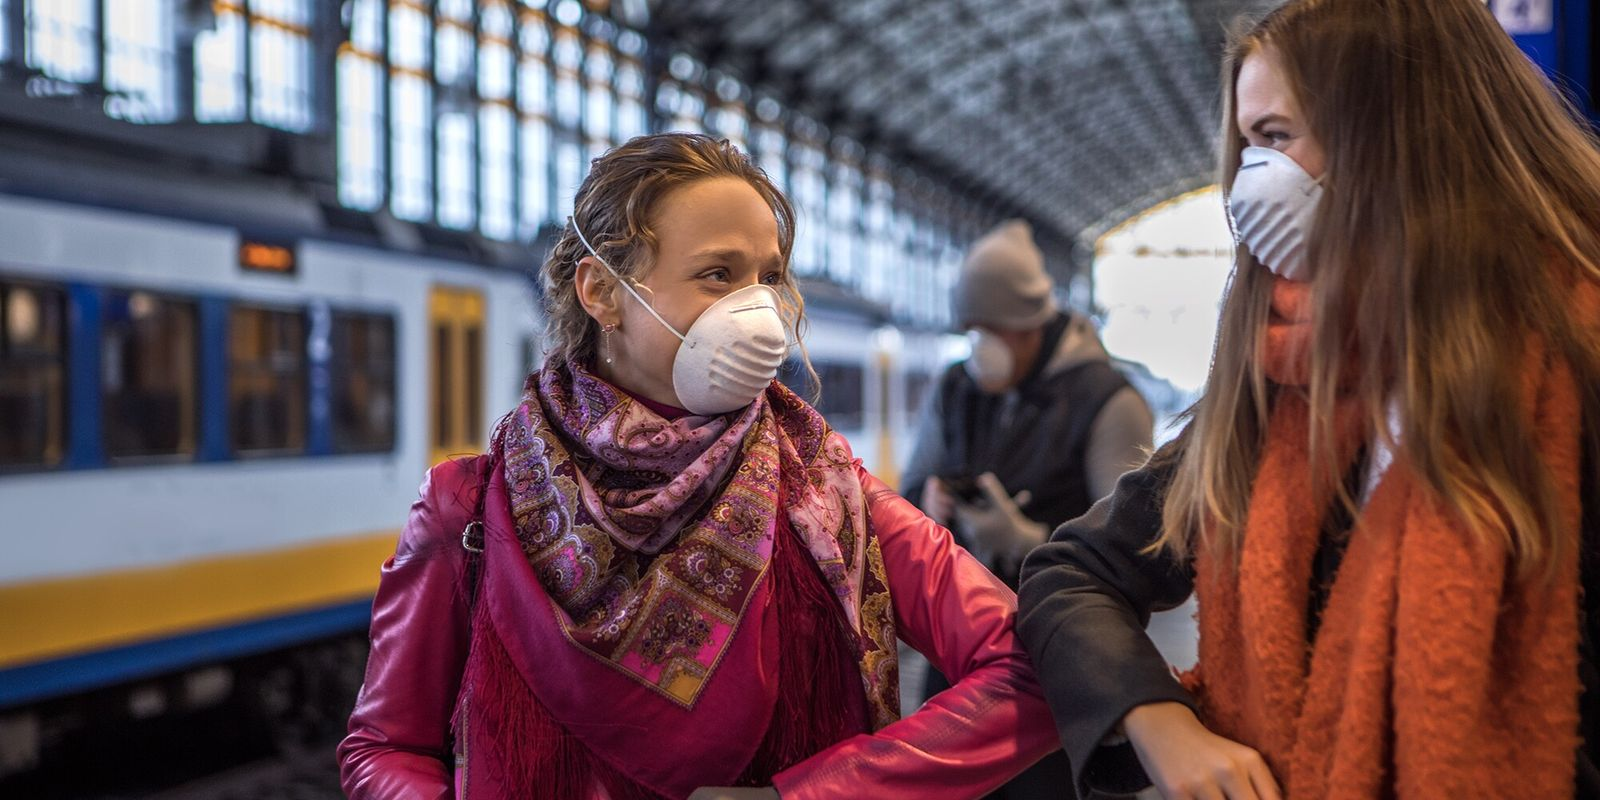 Everything you need to know about travel during the coronavirus outbreak